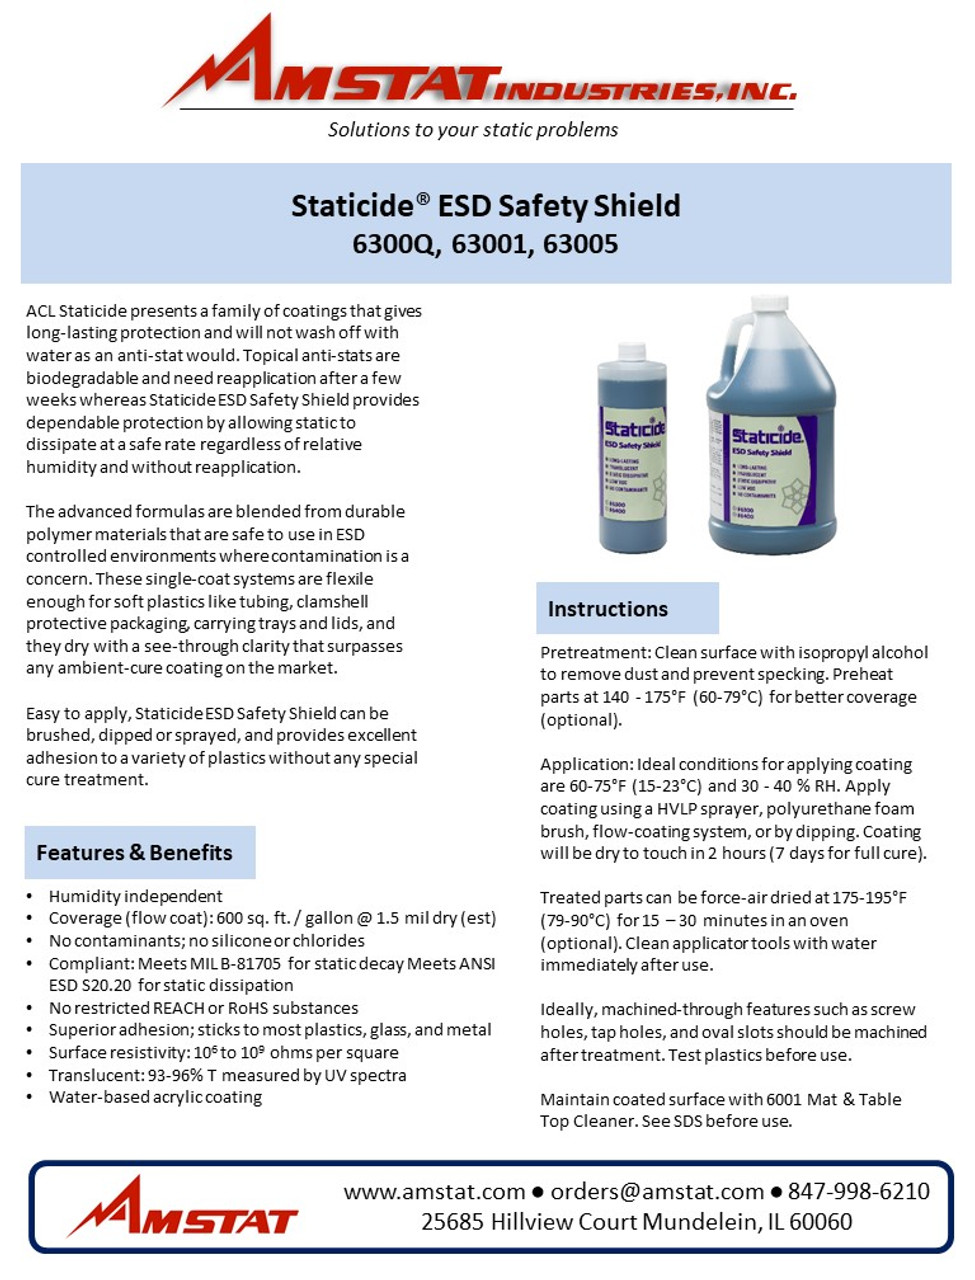 Staticide ESD Safety Shield